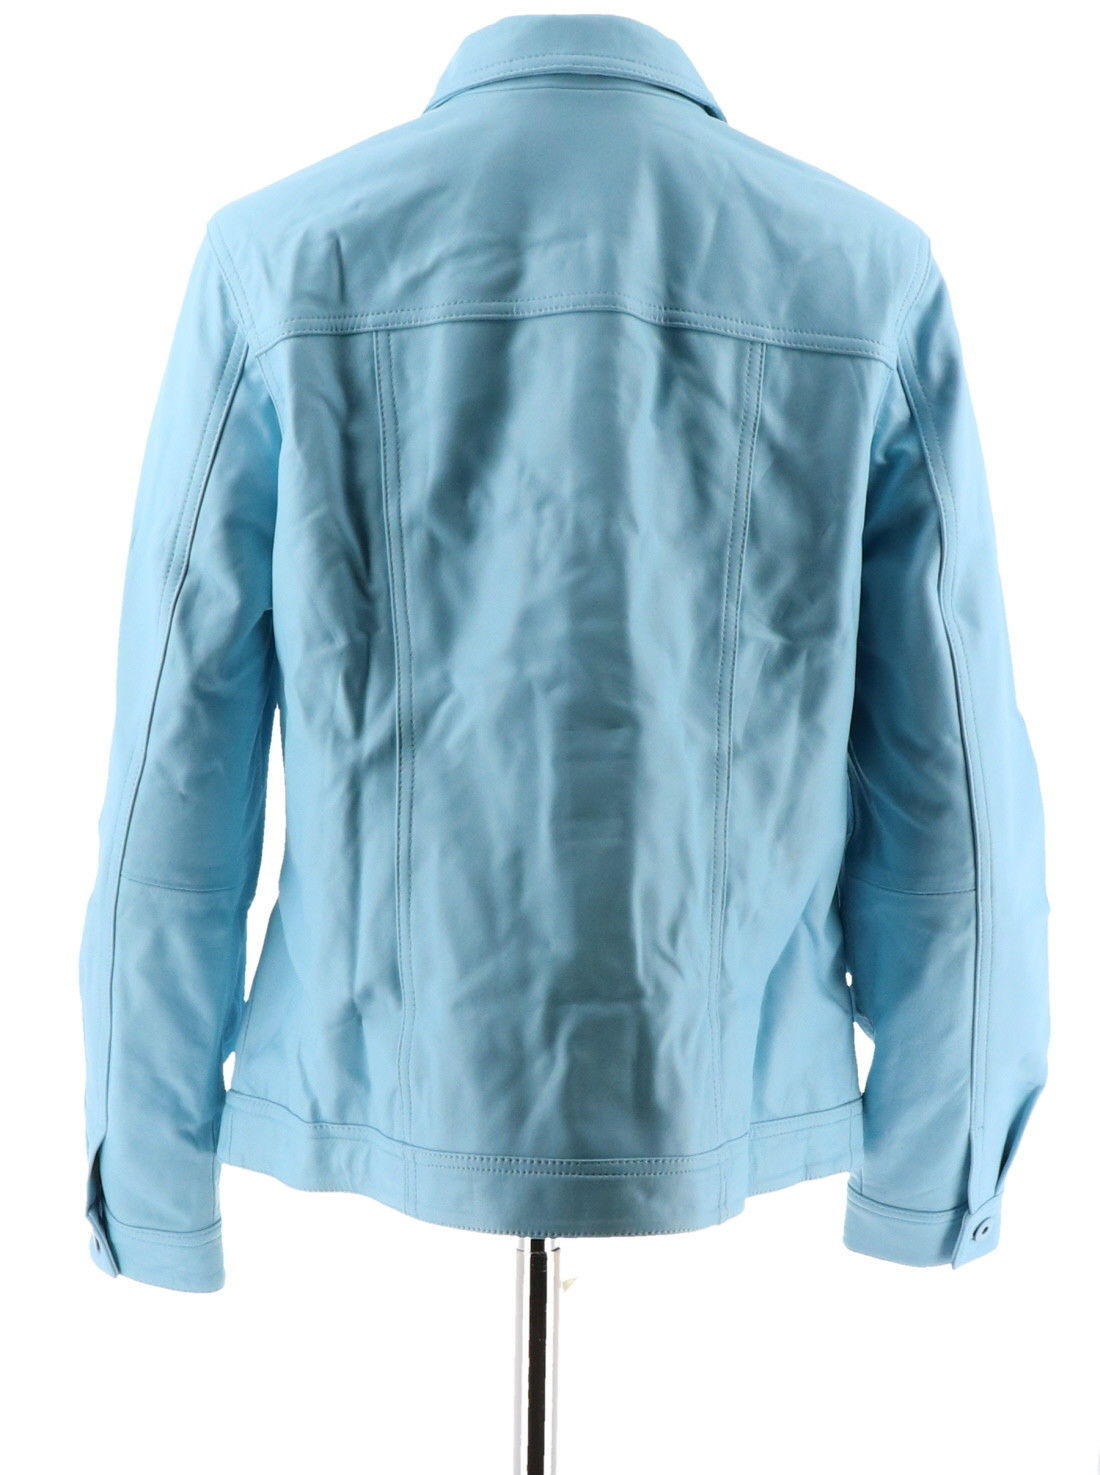 Denim & Co Lamb Leather Jean Jacket Cool Blue M NEW A272640